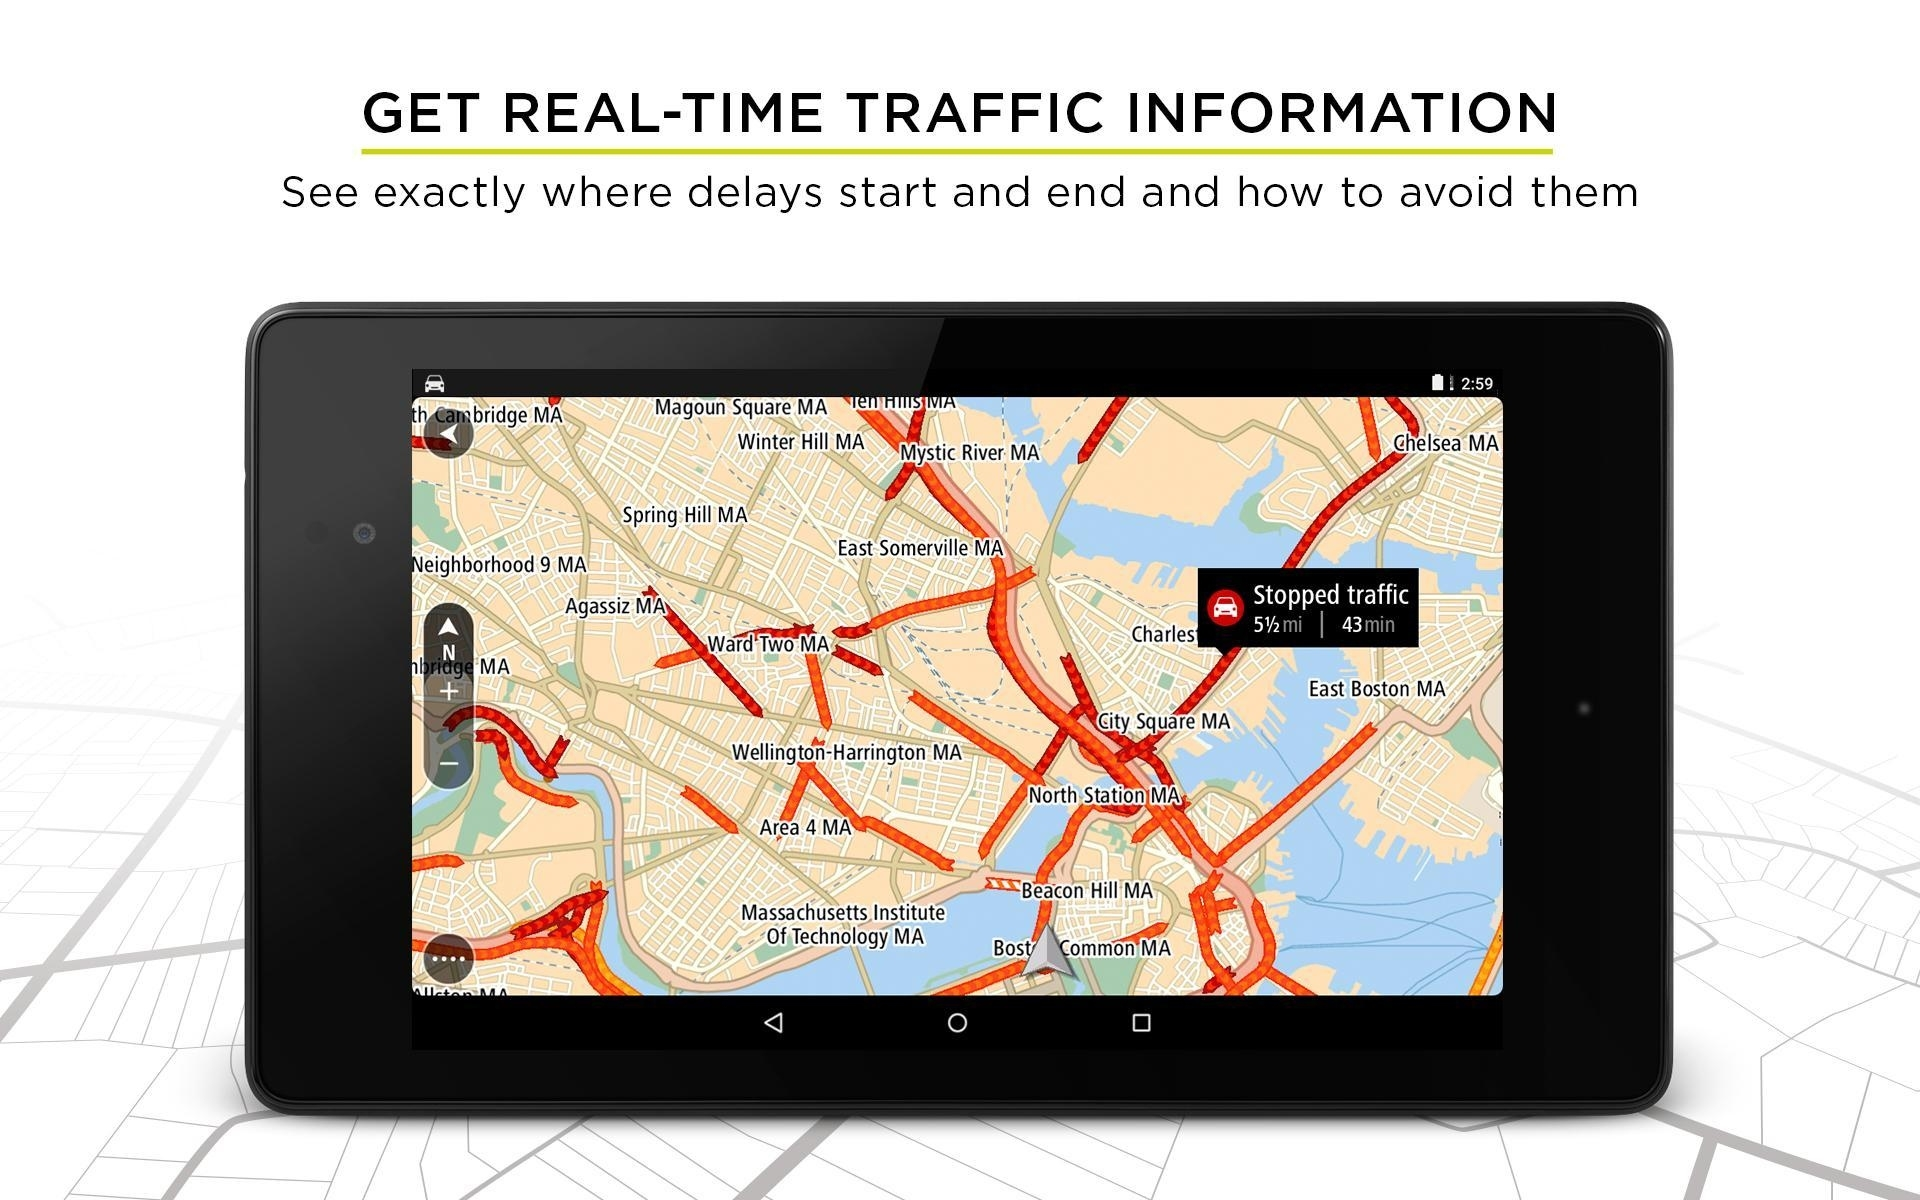 Tomtom Gps Navigation - Live Traffic Alerts & Maps For Android - Apk pertaining to Tomtom Germany Map Free Download